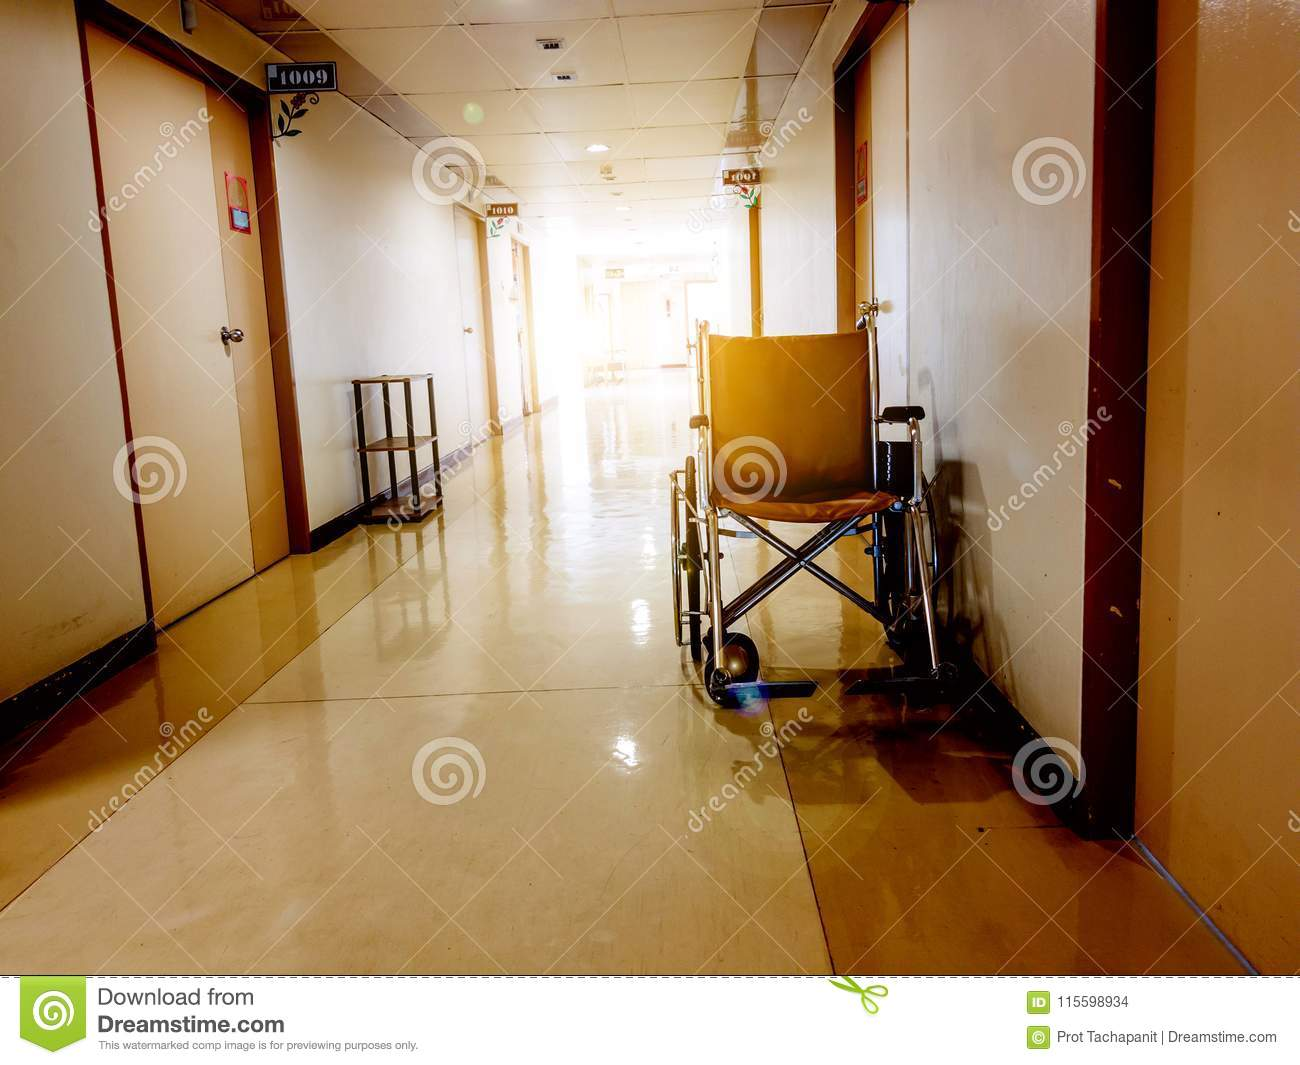 Wheelchair parking in the front of room in hospital. Wheelchair accessible for elderly or sick people